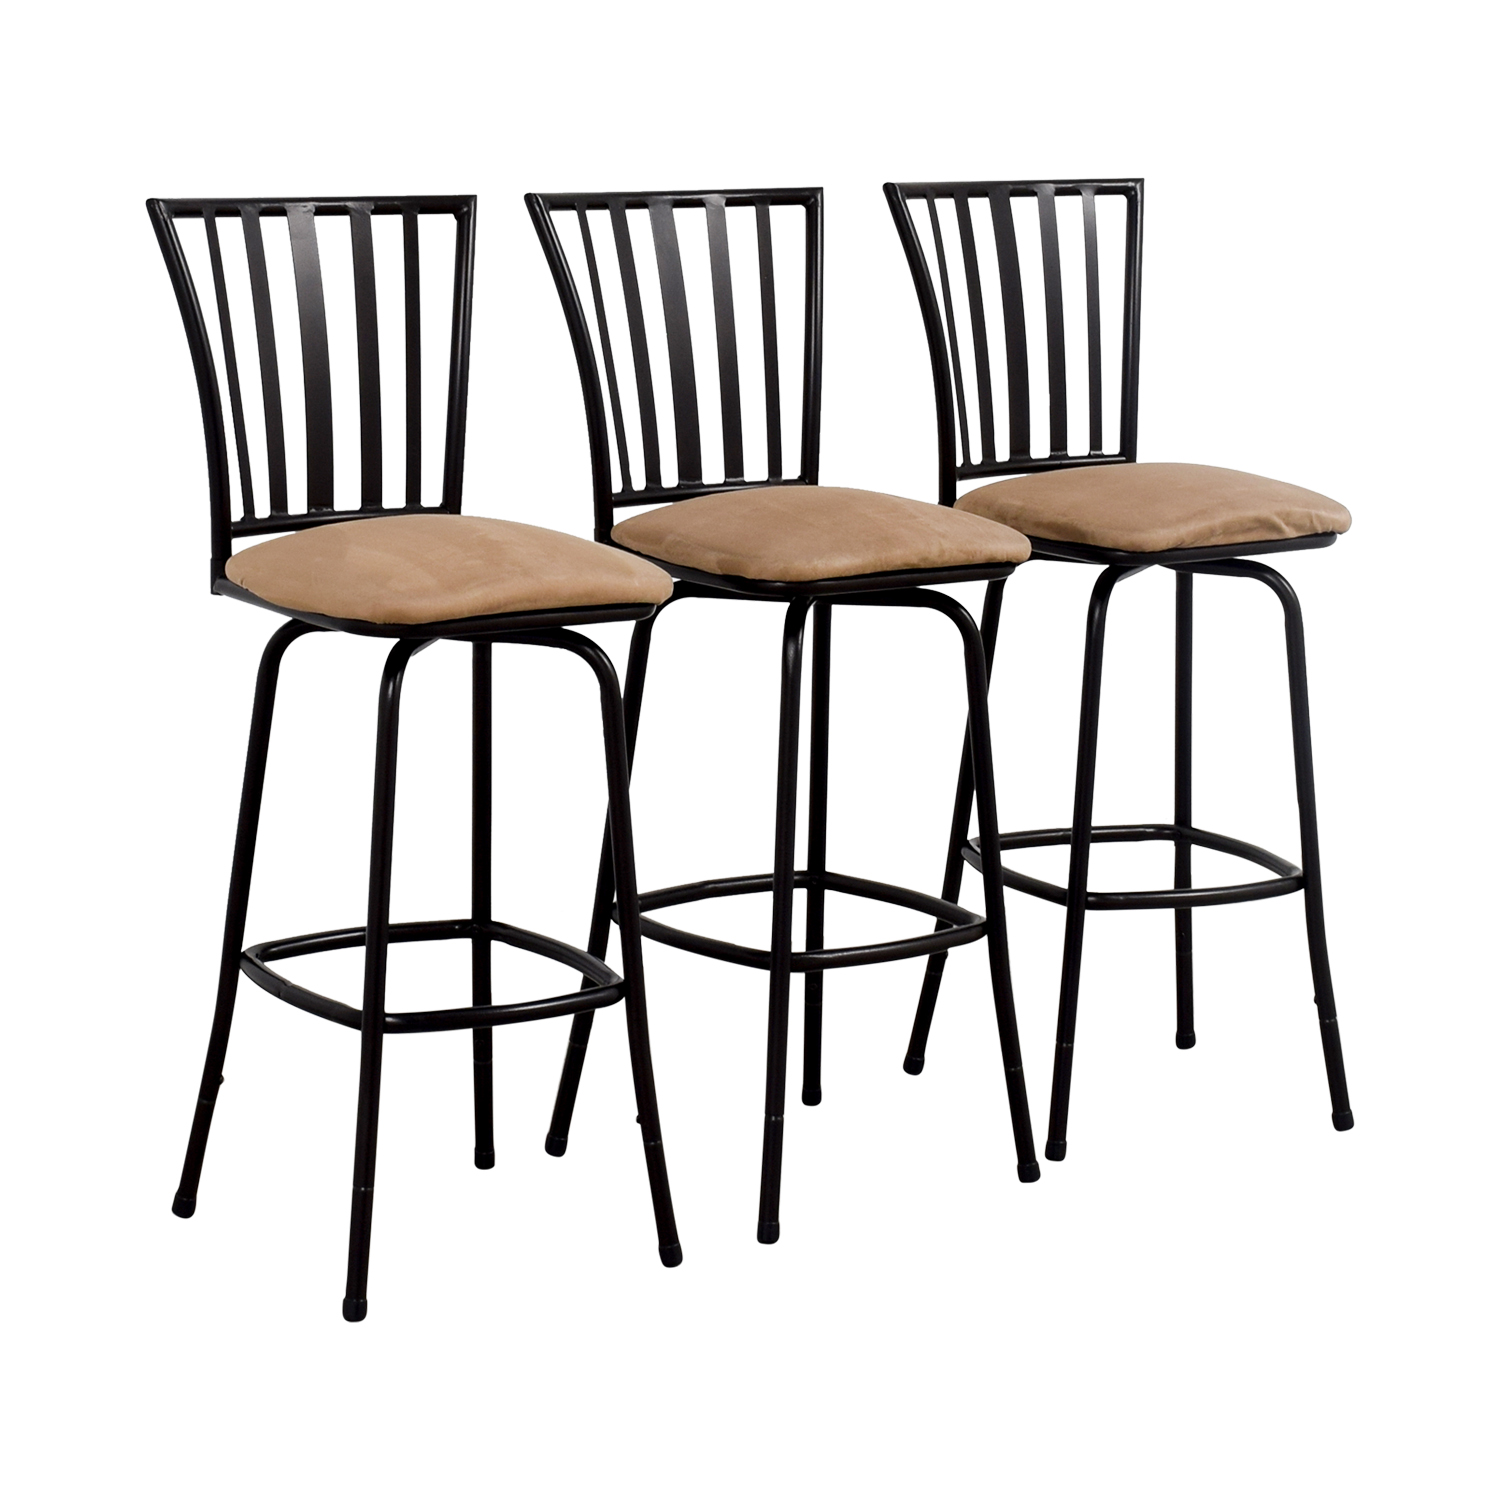 Tan Upholstered Stools with Black Frame